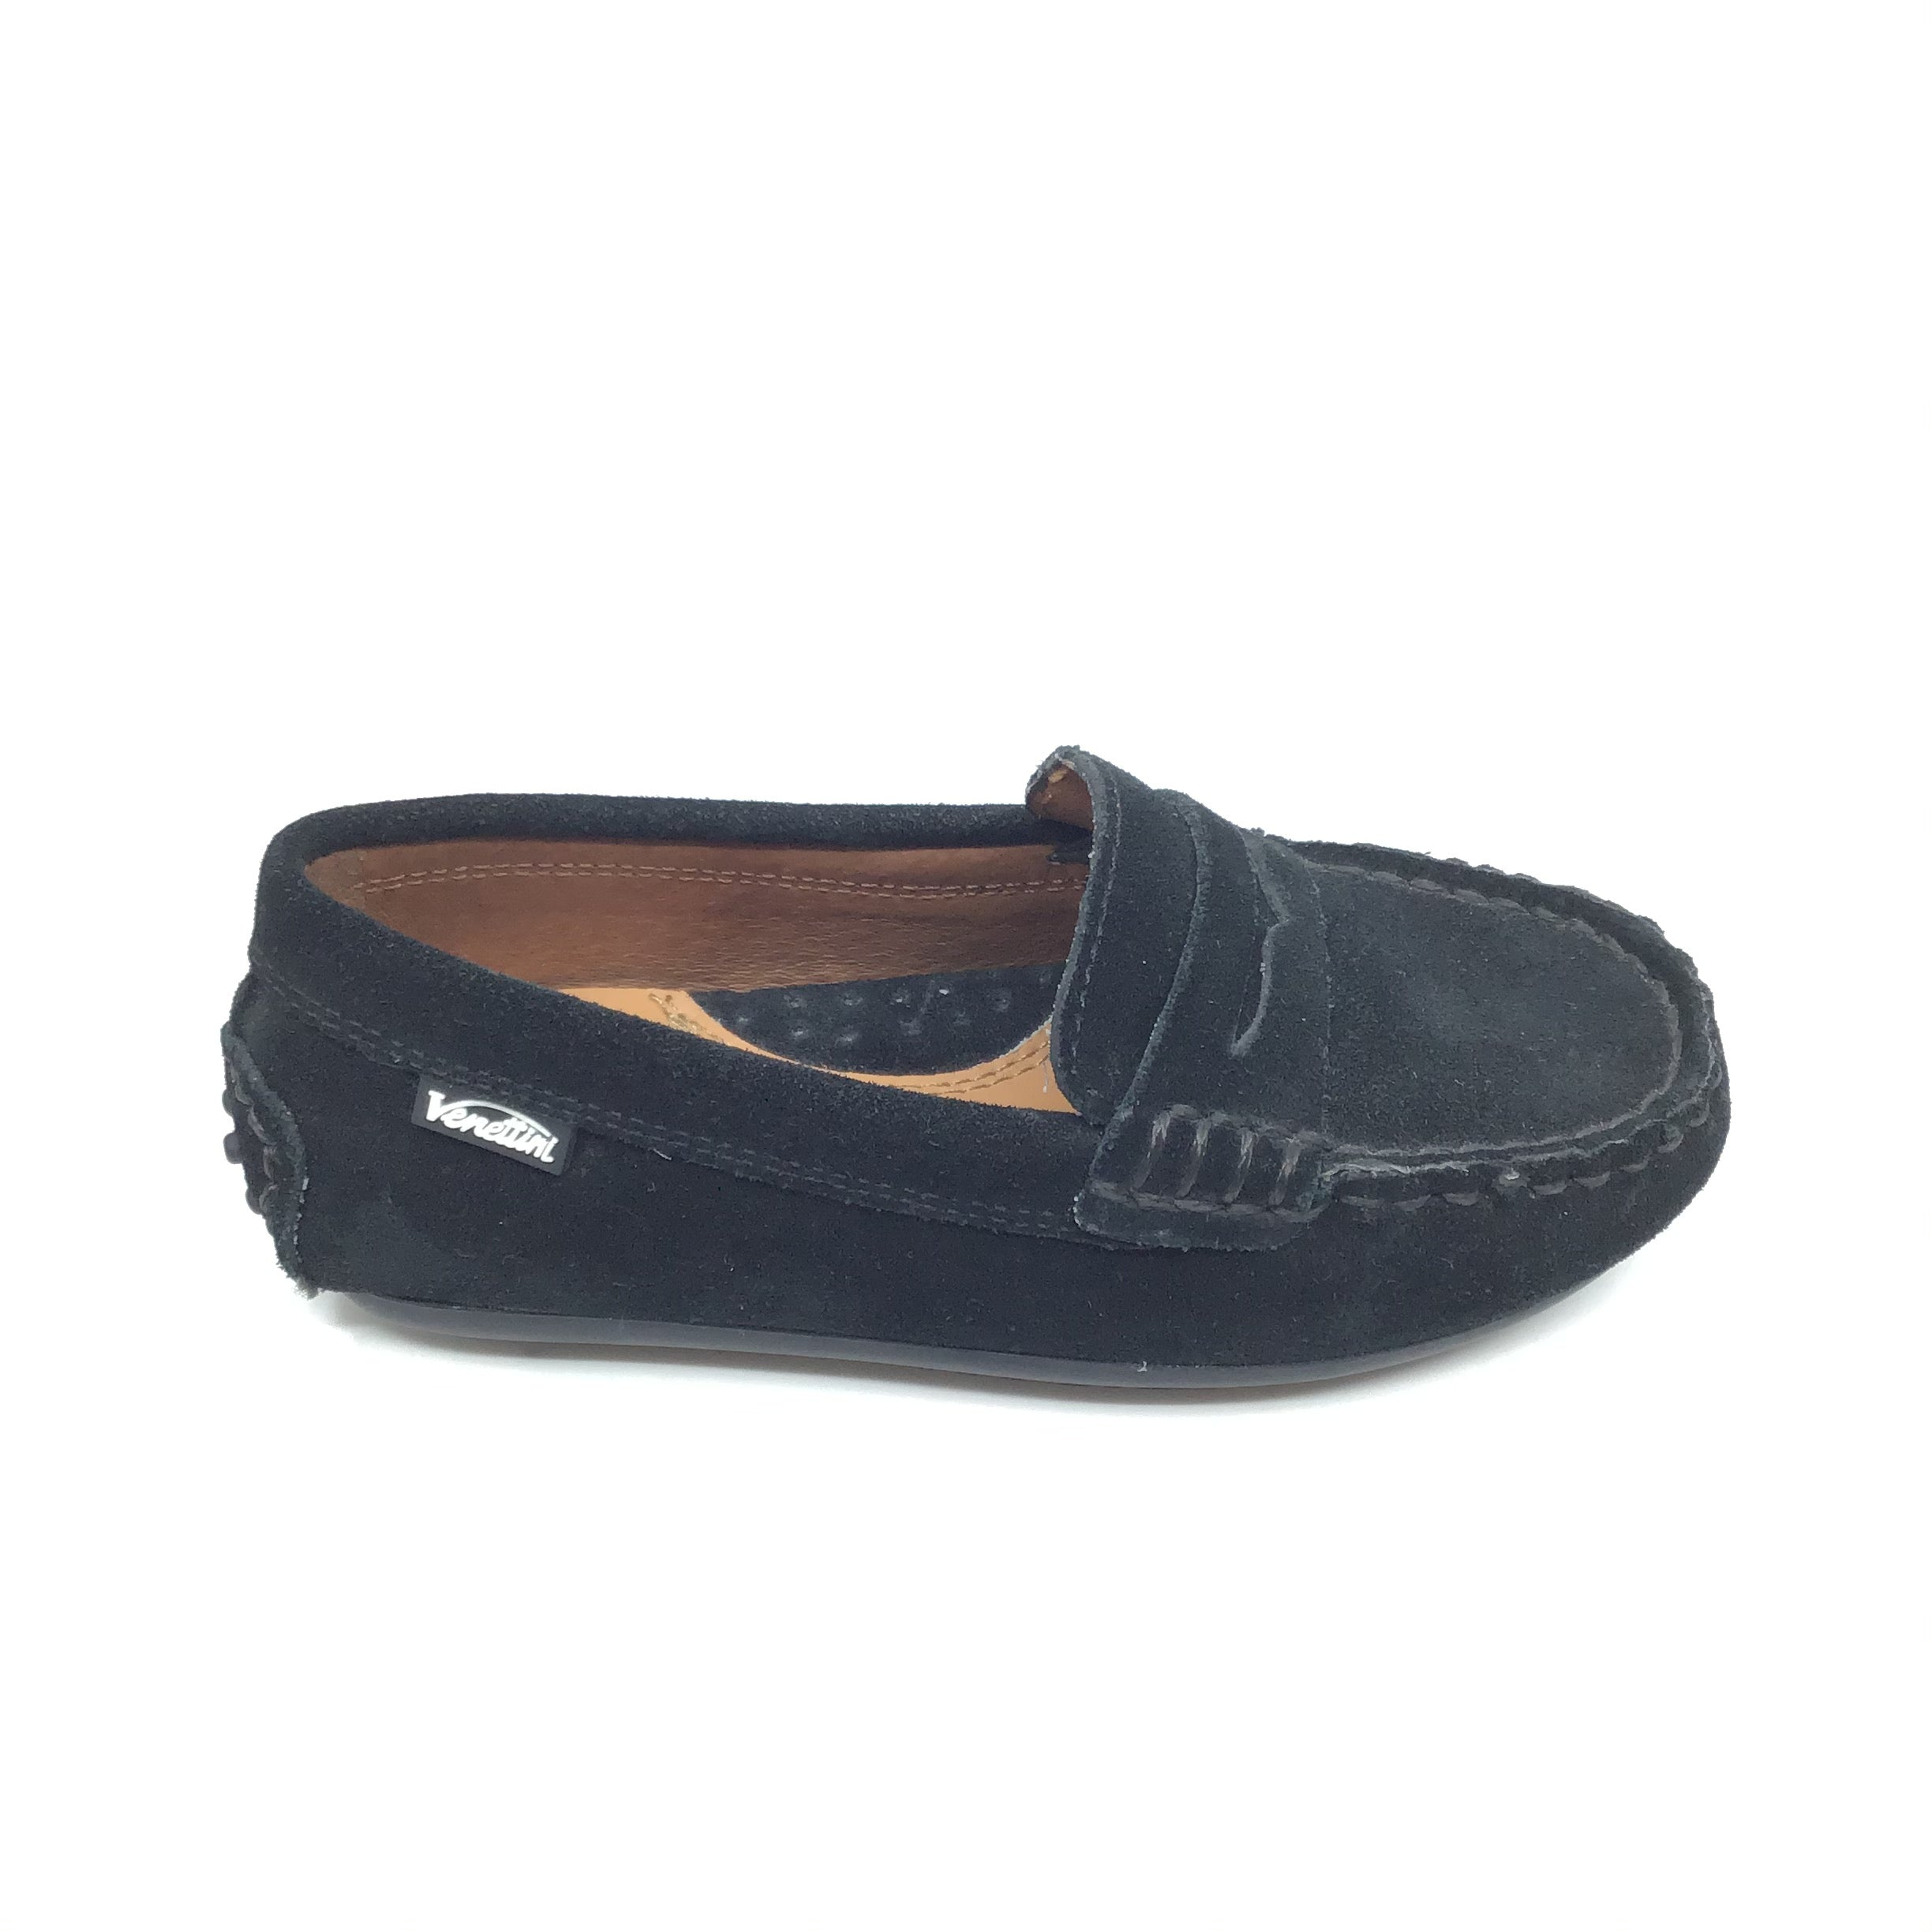 Venettini Black Suede Penny Loafer